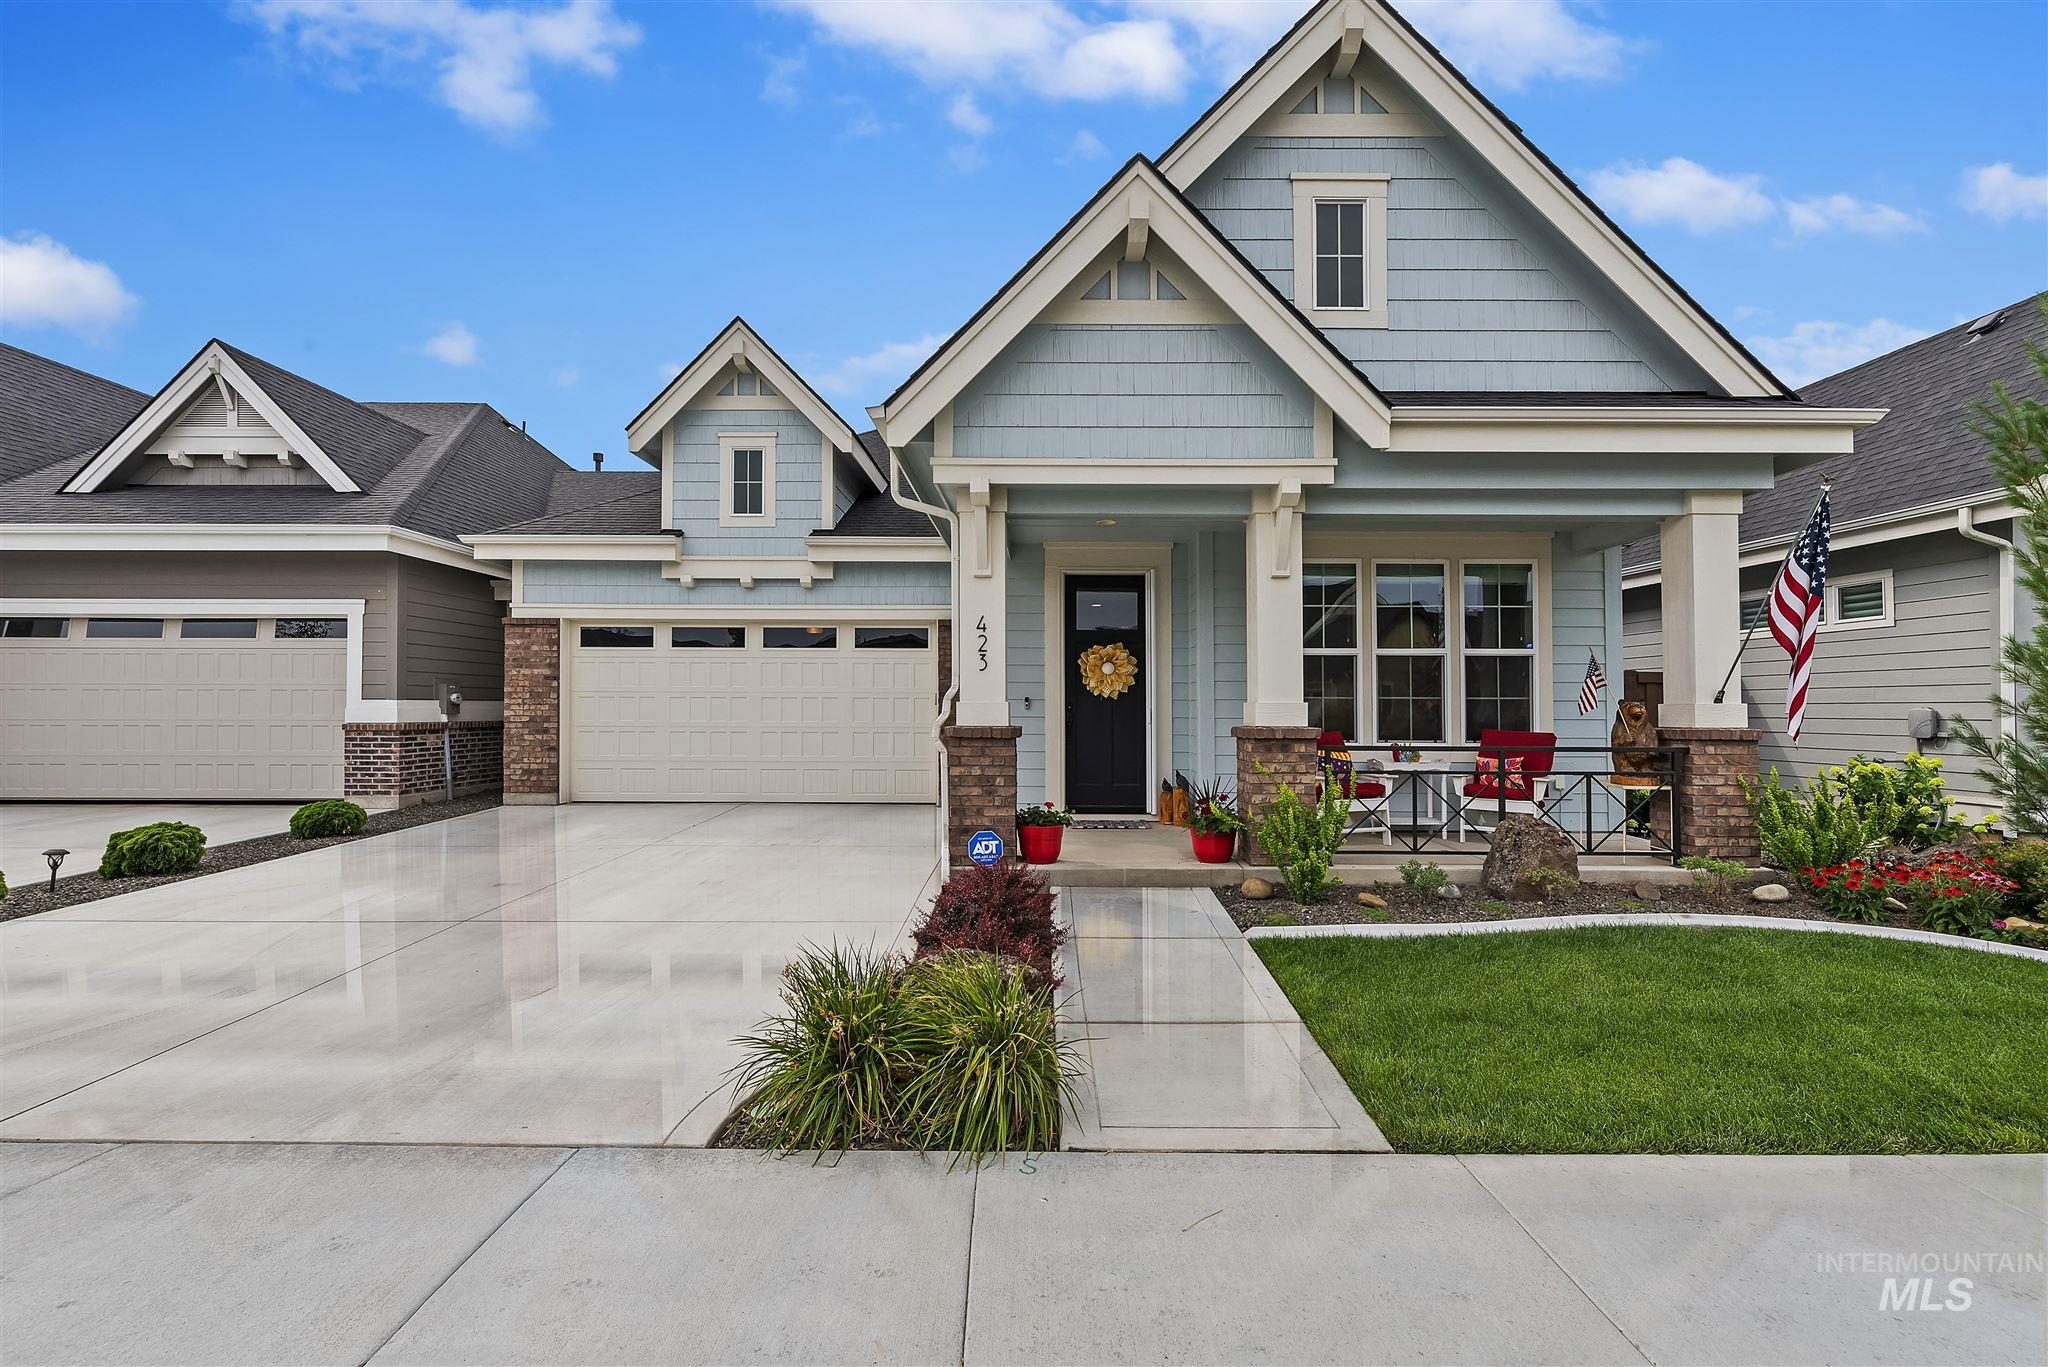 This stunning Dublin Bay Brighton home has all the bells and whistles. A classy, cozy place to call home that's better than brand new featuring window coverings through out, all Bosch appliances, extended patio cover and more. The landscaping both front and back is maintained by the neighborhood. Home is HERS, Energy Star rated saving up to 30% compared to other homes.  There is plenty of space to make the den an office, a cozy get away or the perfect craft room. Pre listing inspection has been completed.